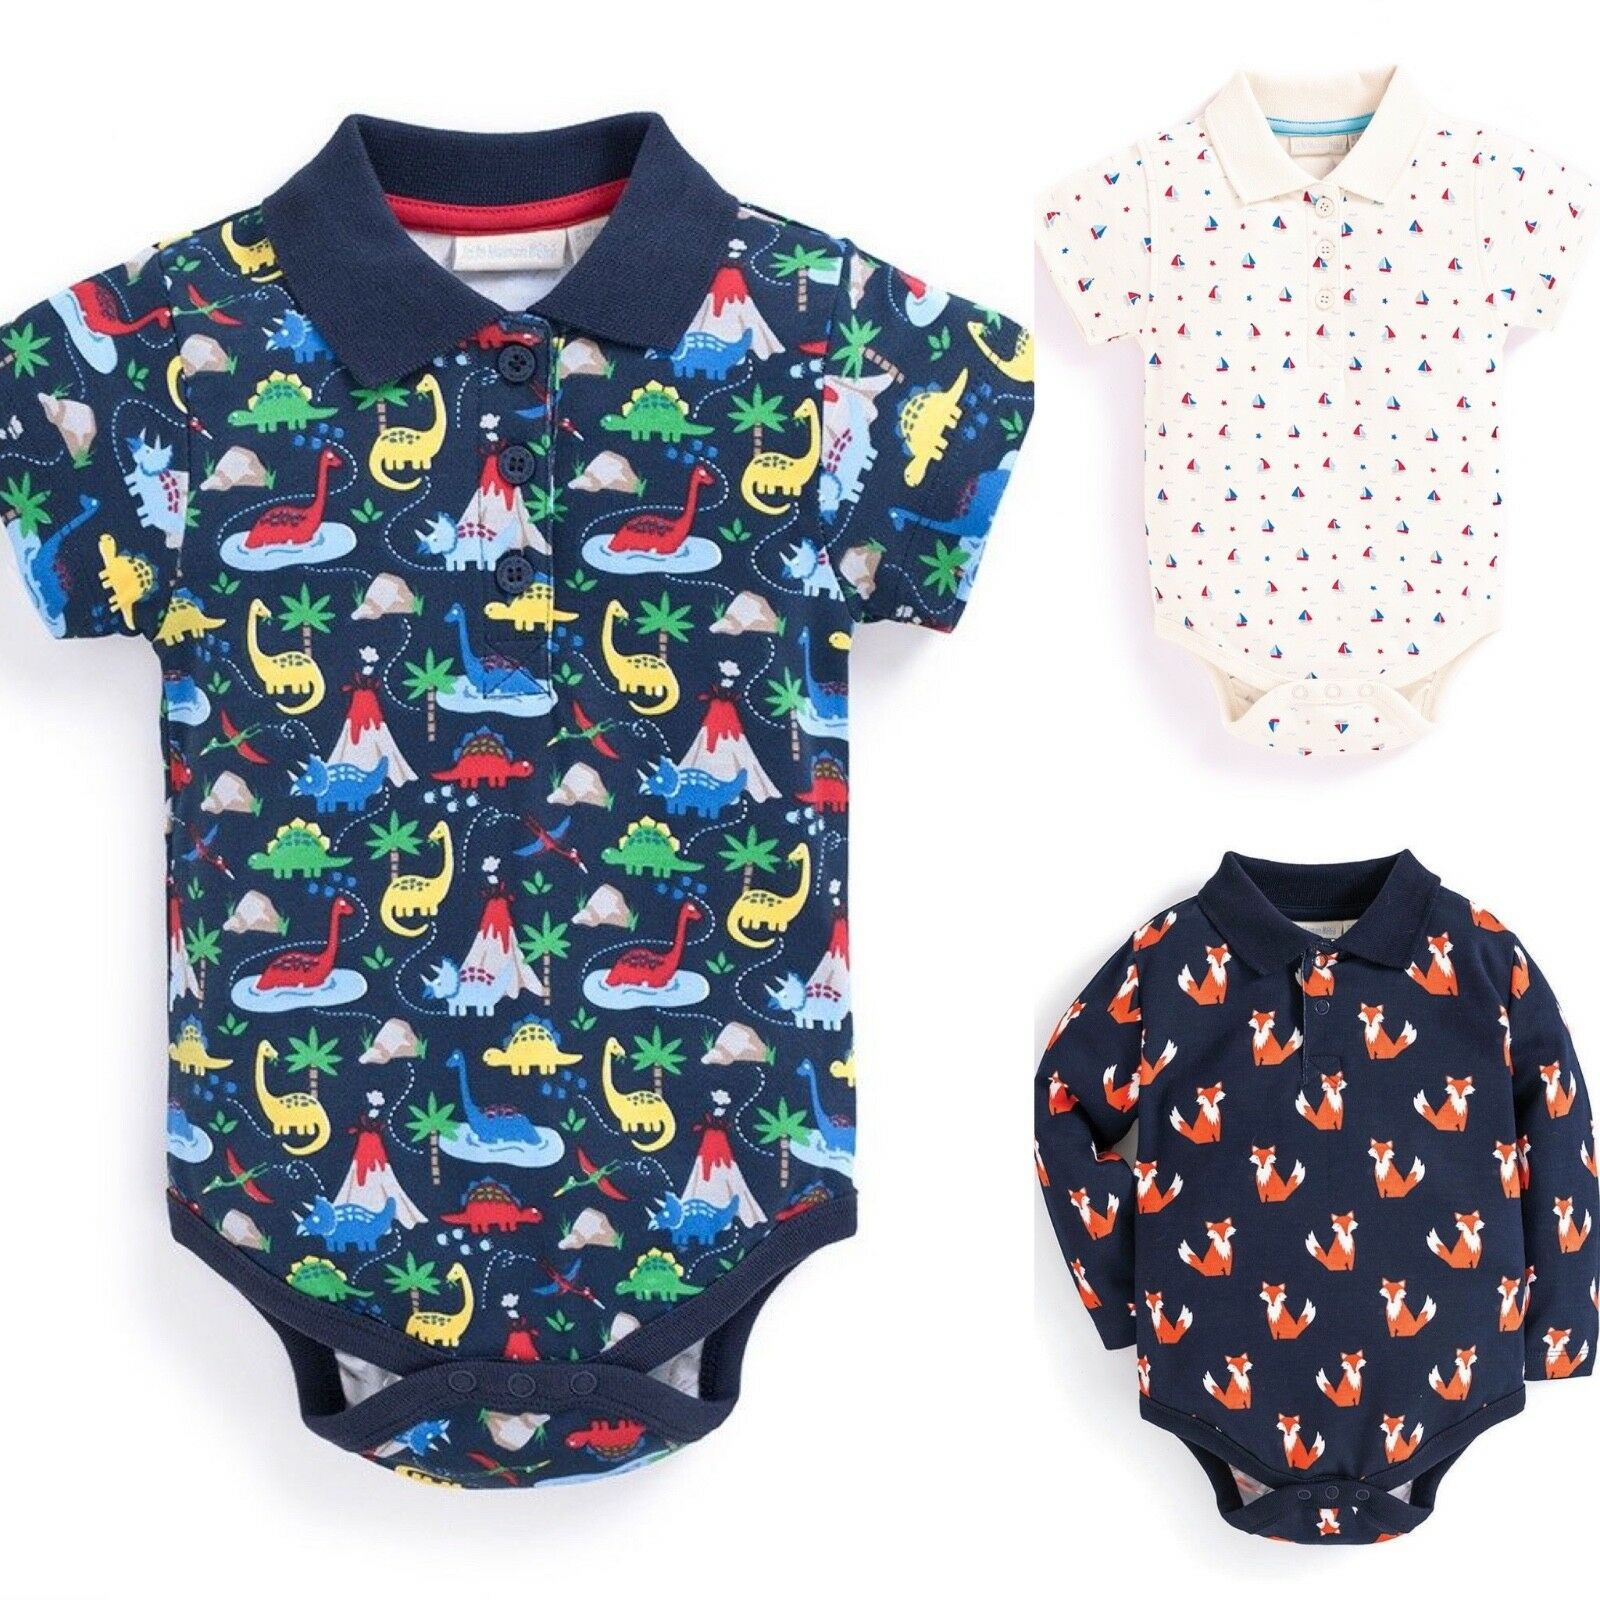 SC262 Ex Chainstore Multi Print Baby Boys Collared Bodysuit x34